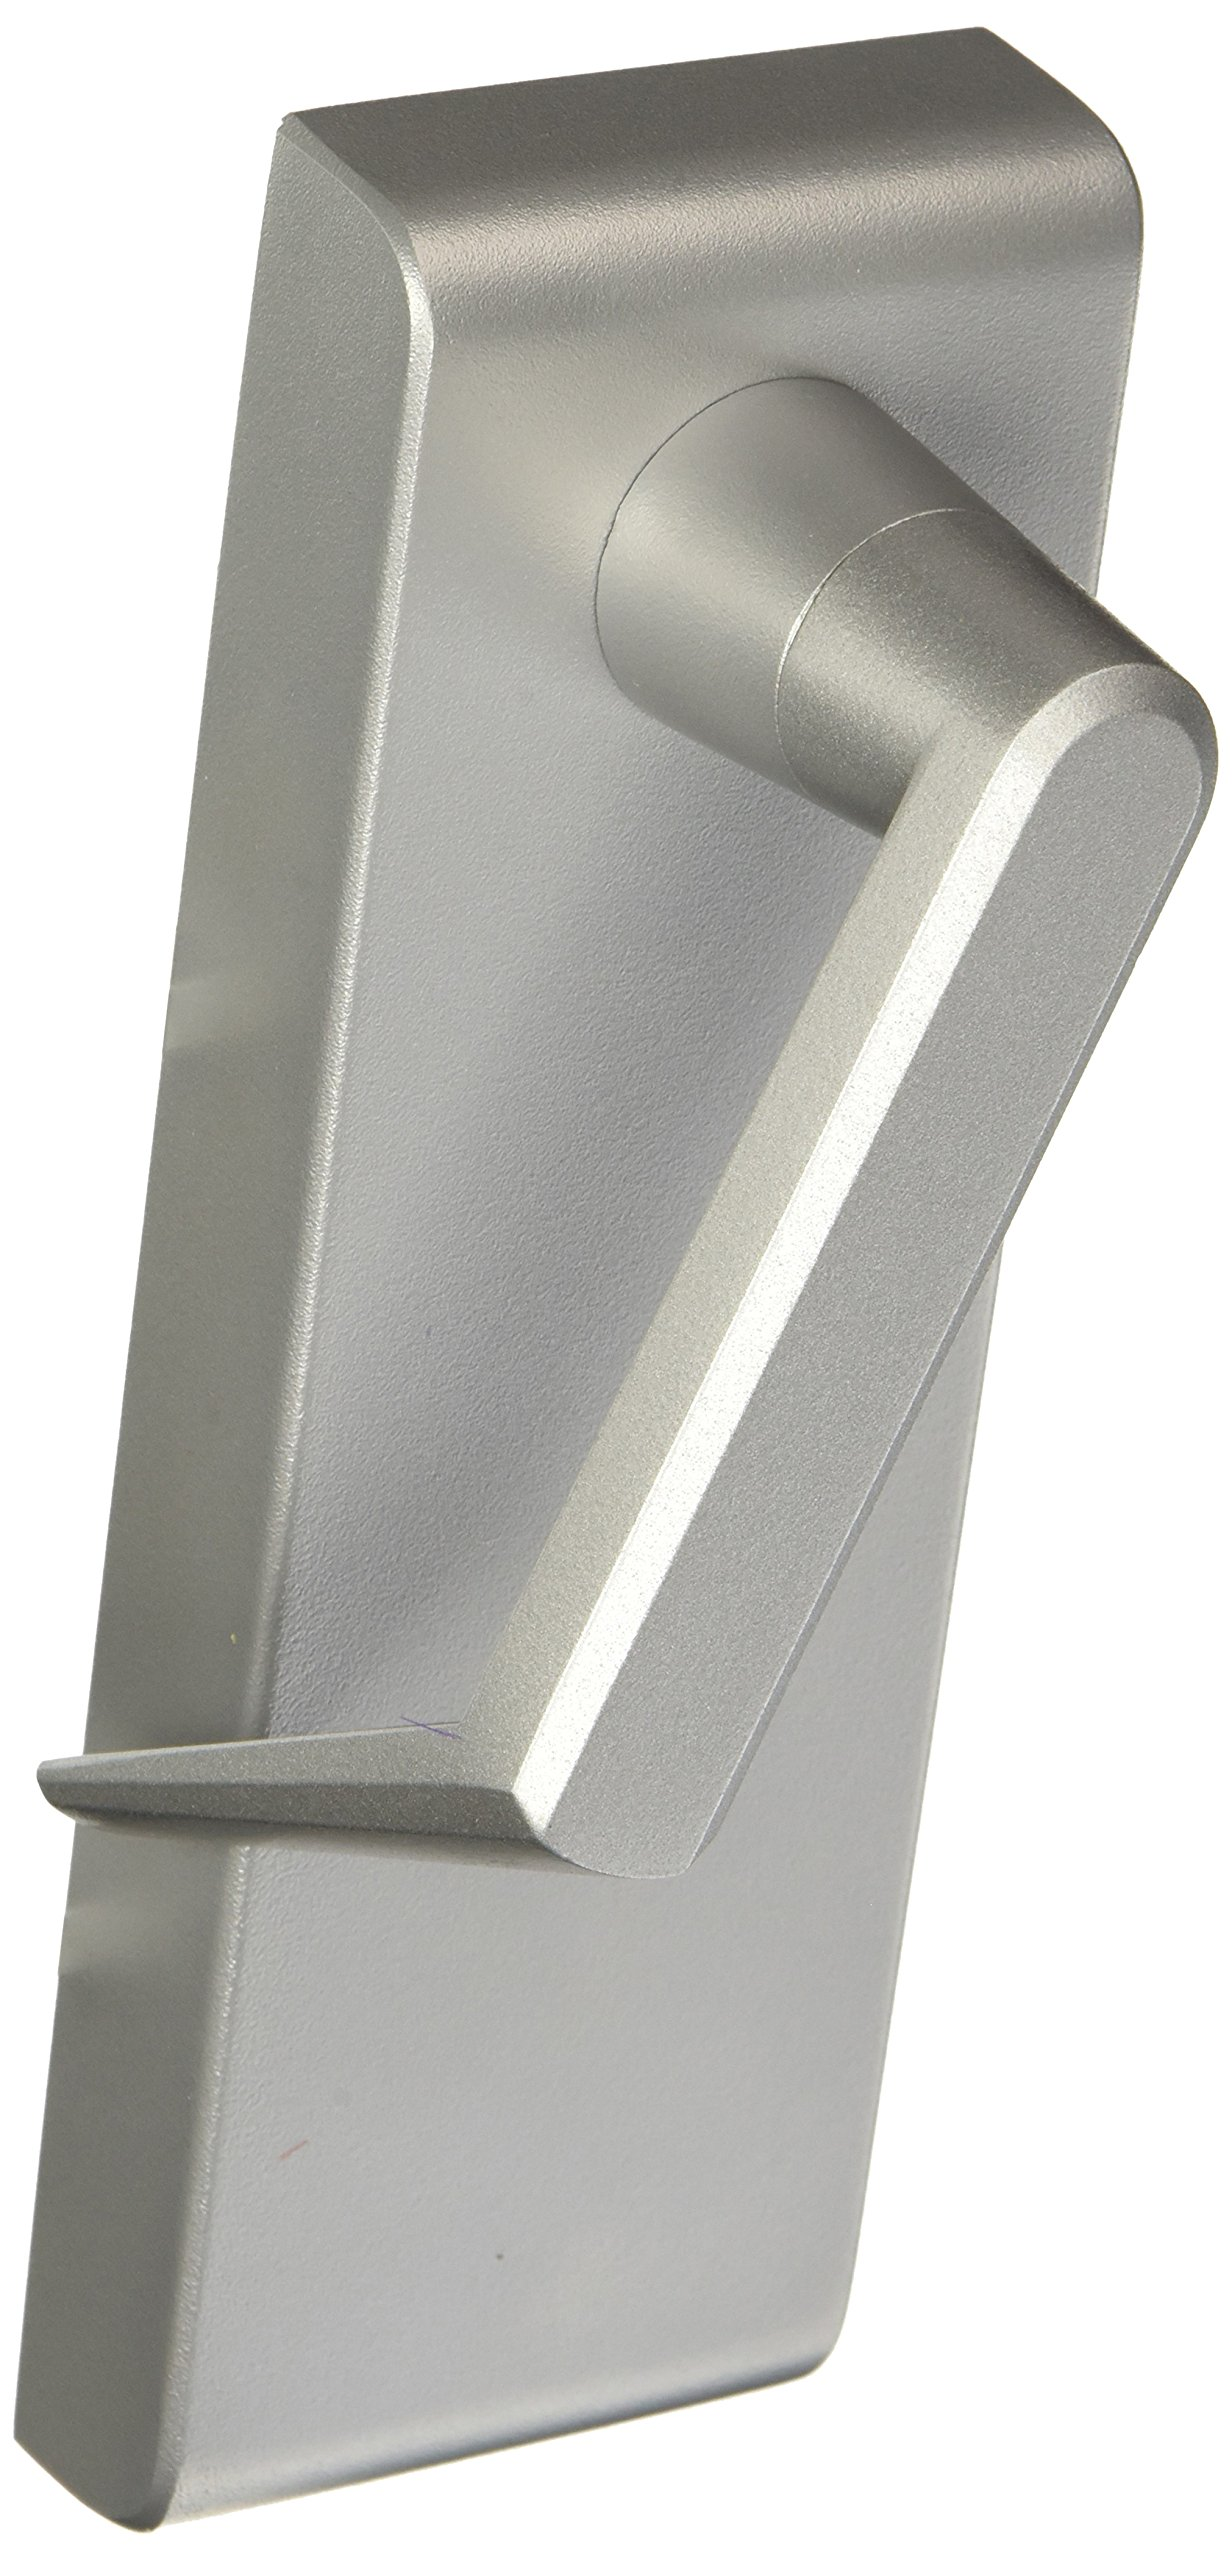 Stanley Commercial Hardware Stainless Steel Passage Escutcheon Lever Standard Duty Exit Trim from the QET300 Collection, Sierra Style, Painted Aluminum Finish